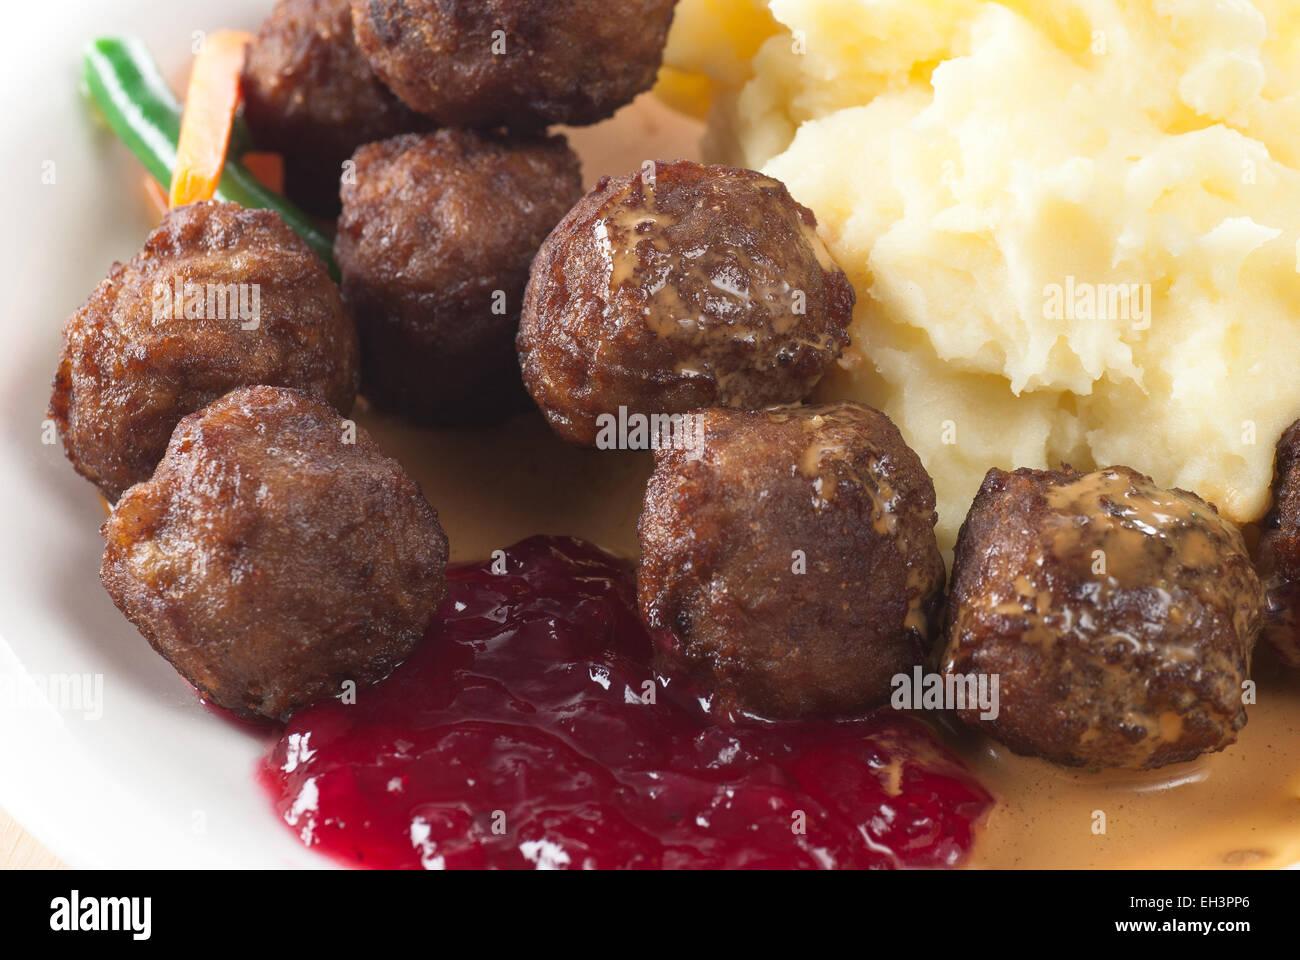 Meat balls with mashed potato, brown cream sauce and lingonberry preserves. - Stock Image